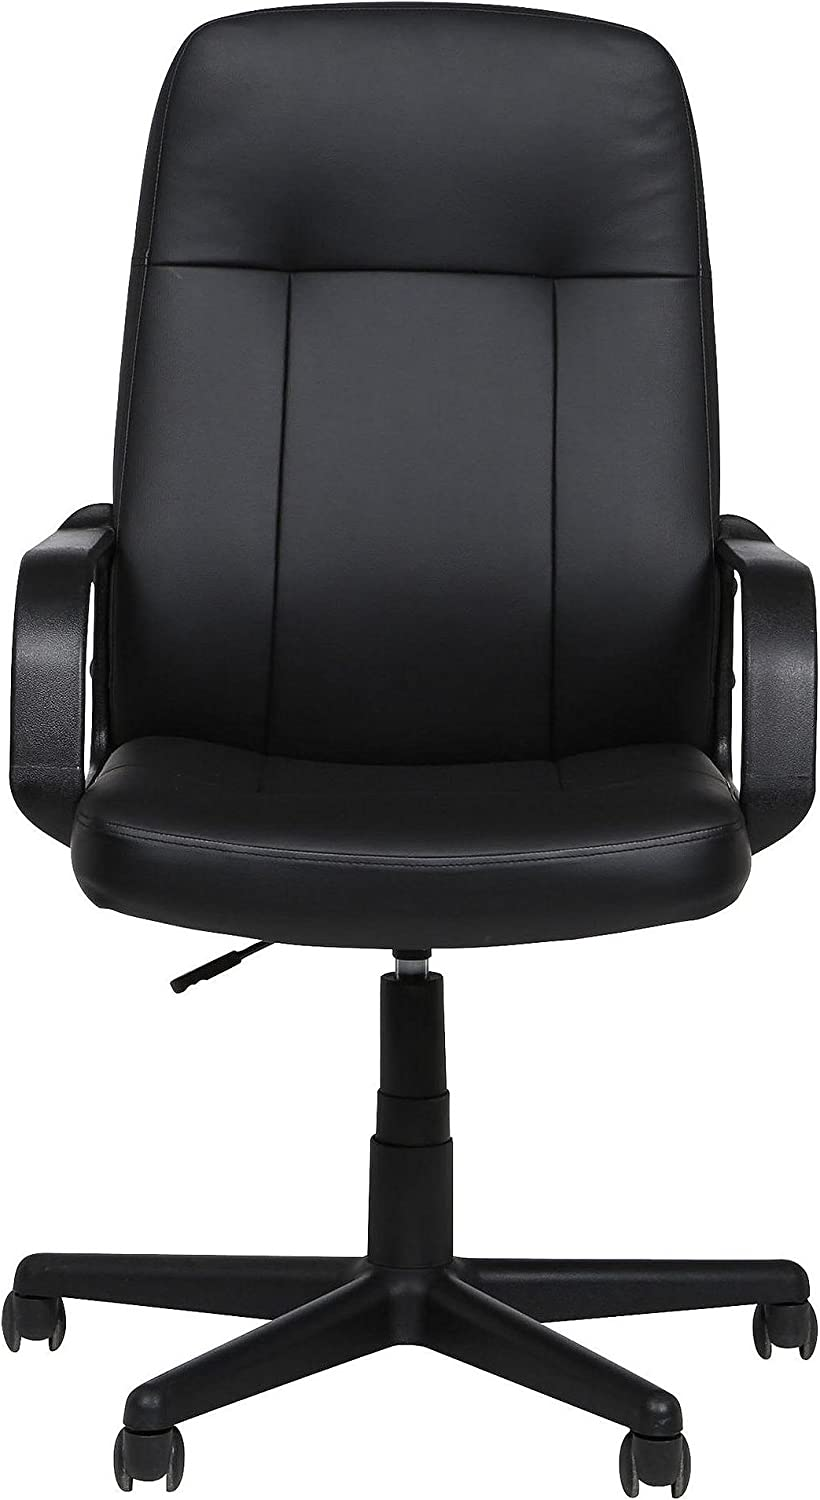 Tesco Evan Leather Effect Swivel Office Chair - Black: Amazon.co